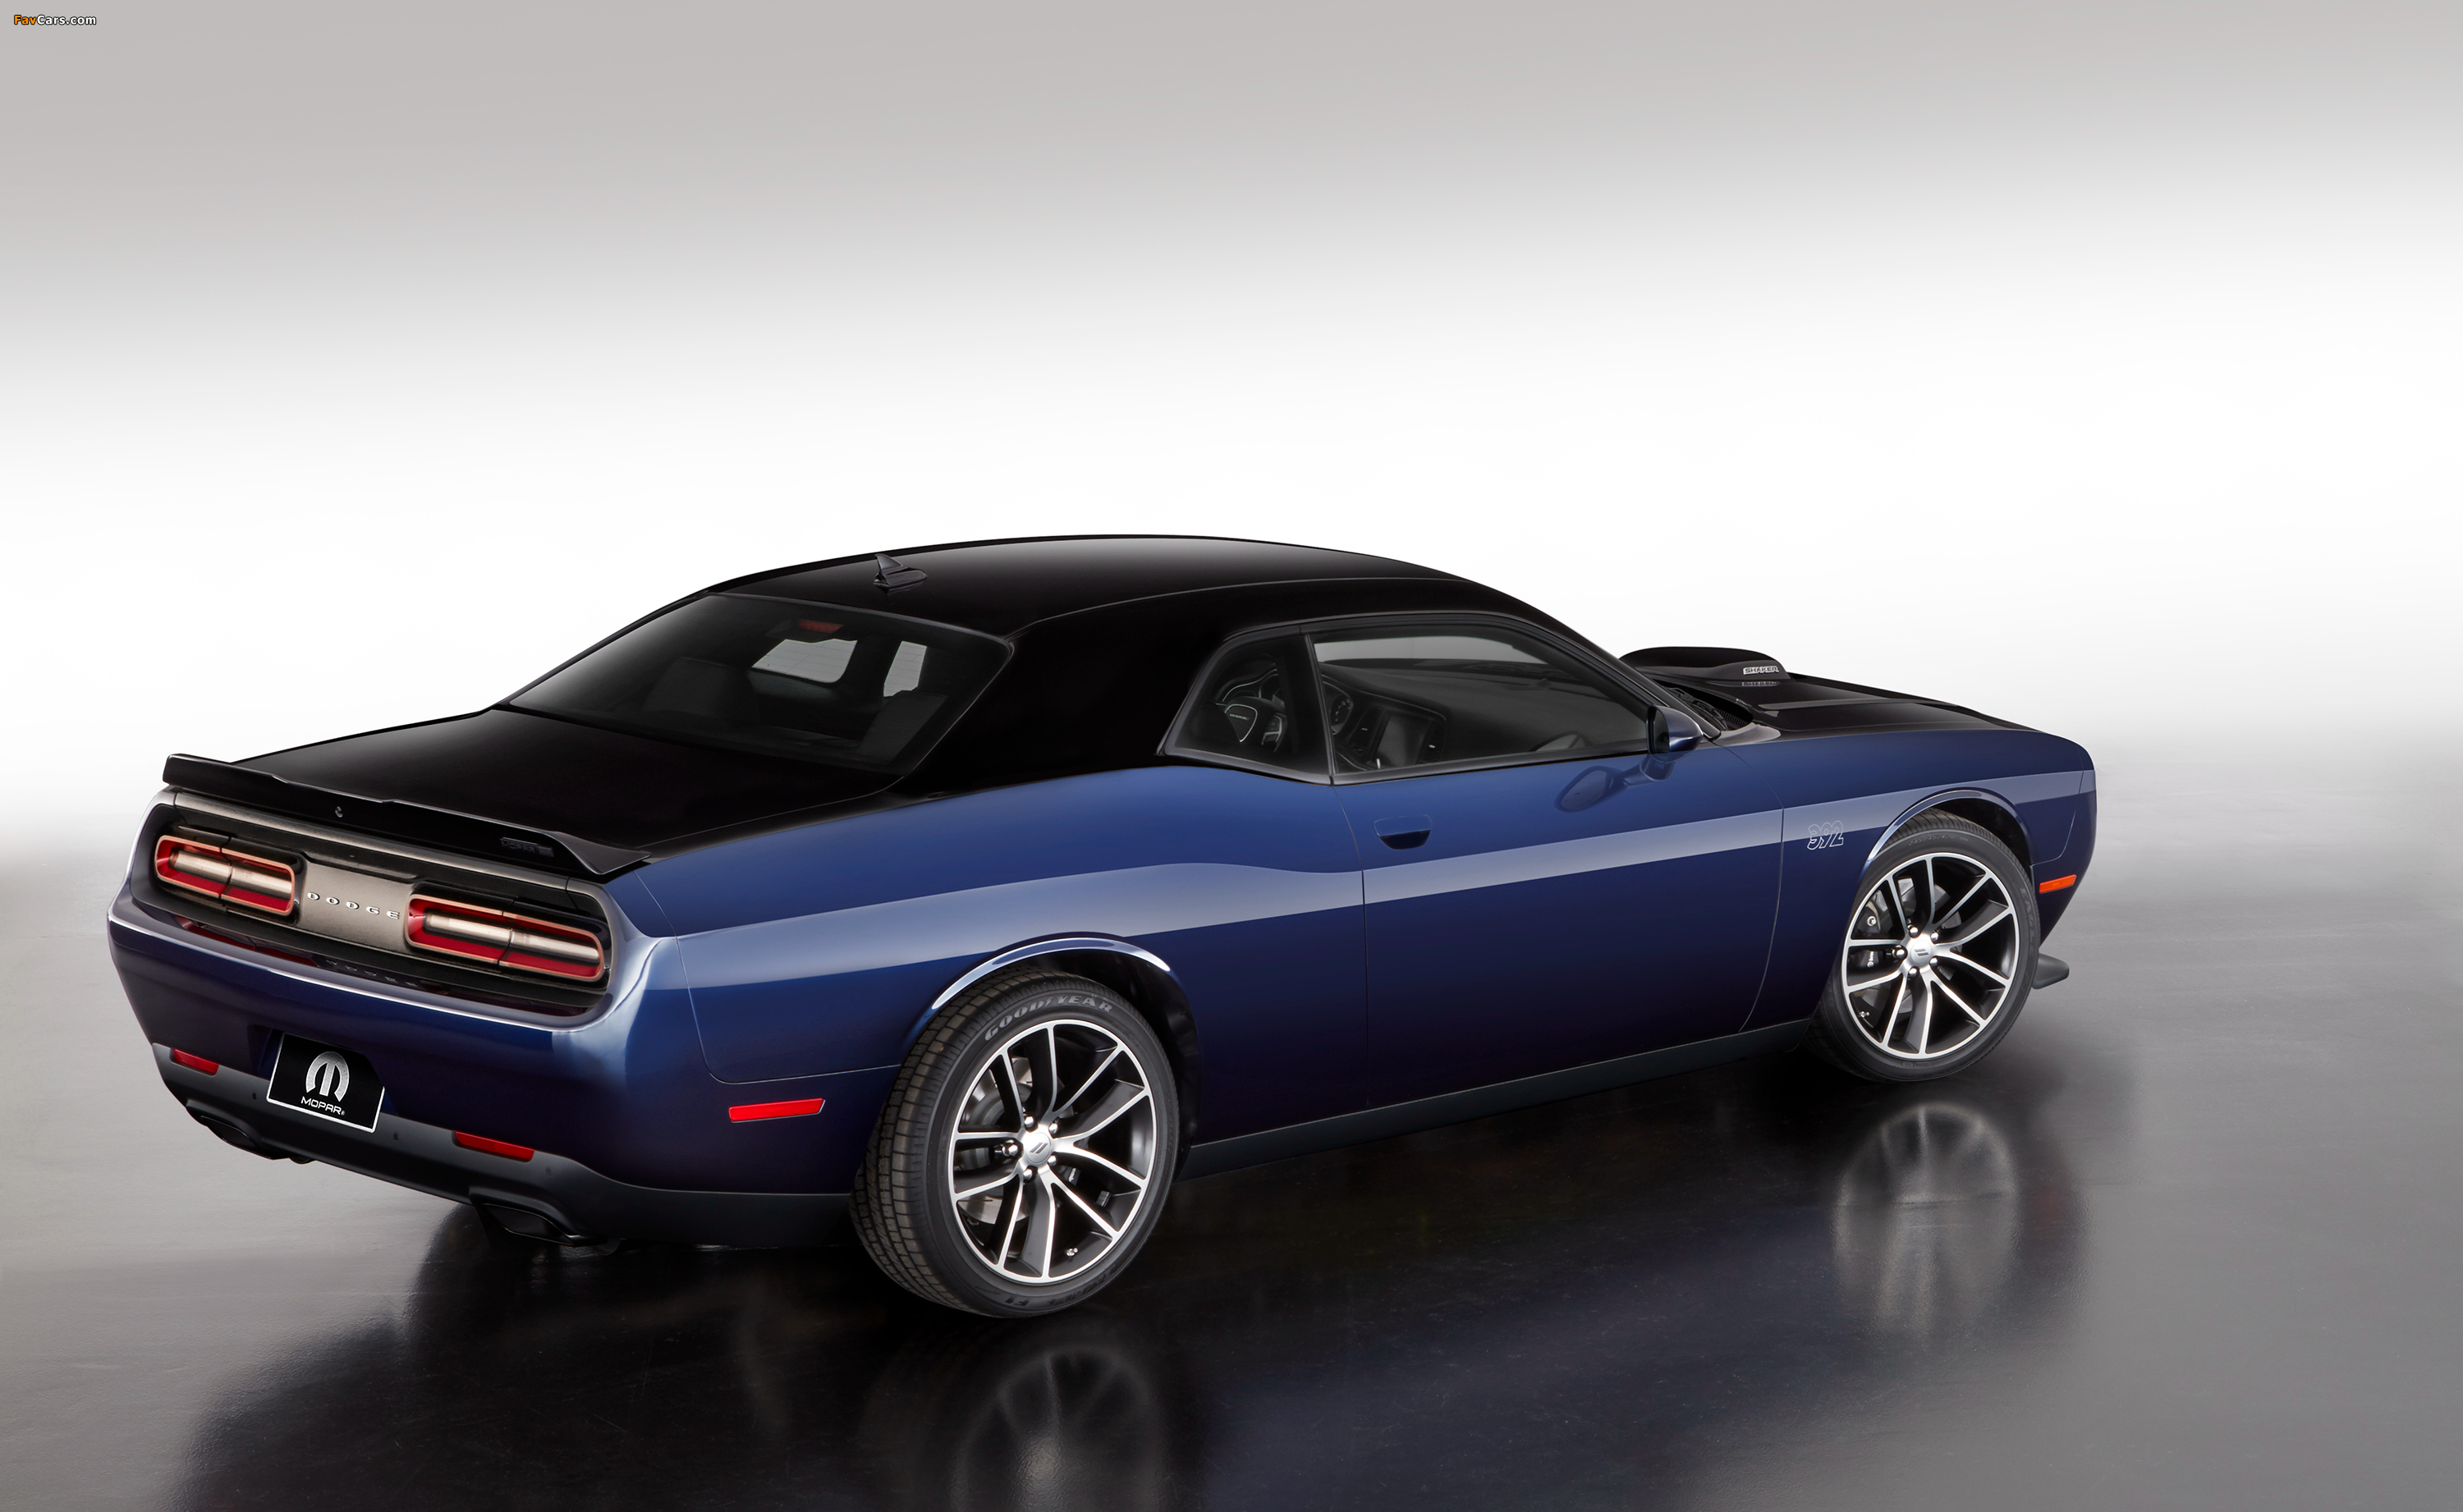 20082015 dodge challenger mopar hellcat car cover